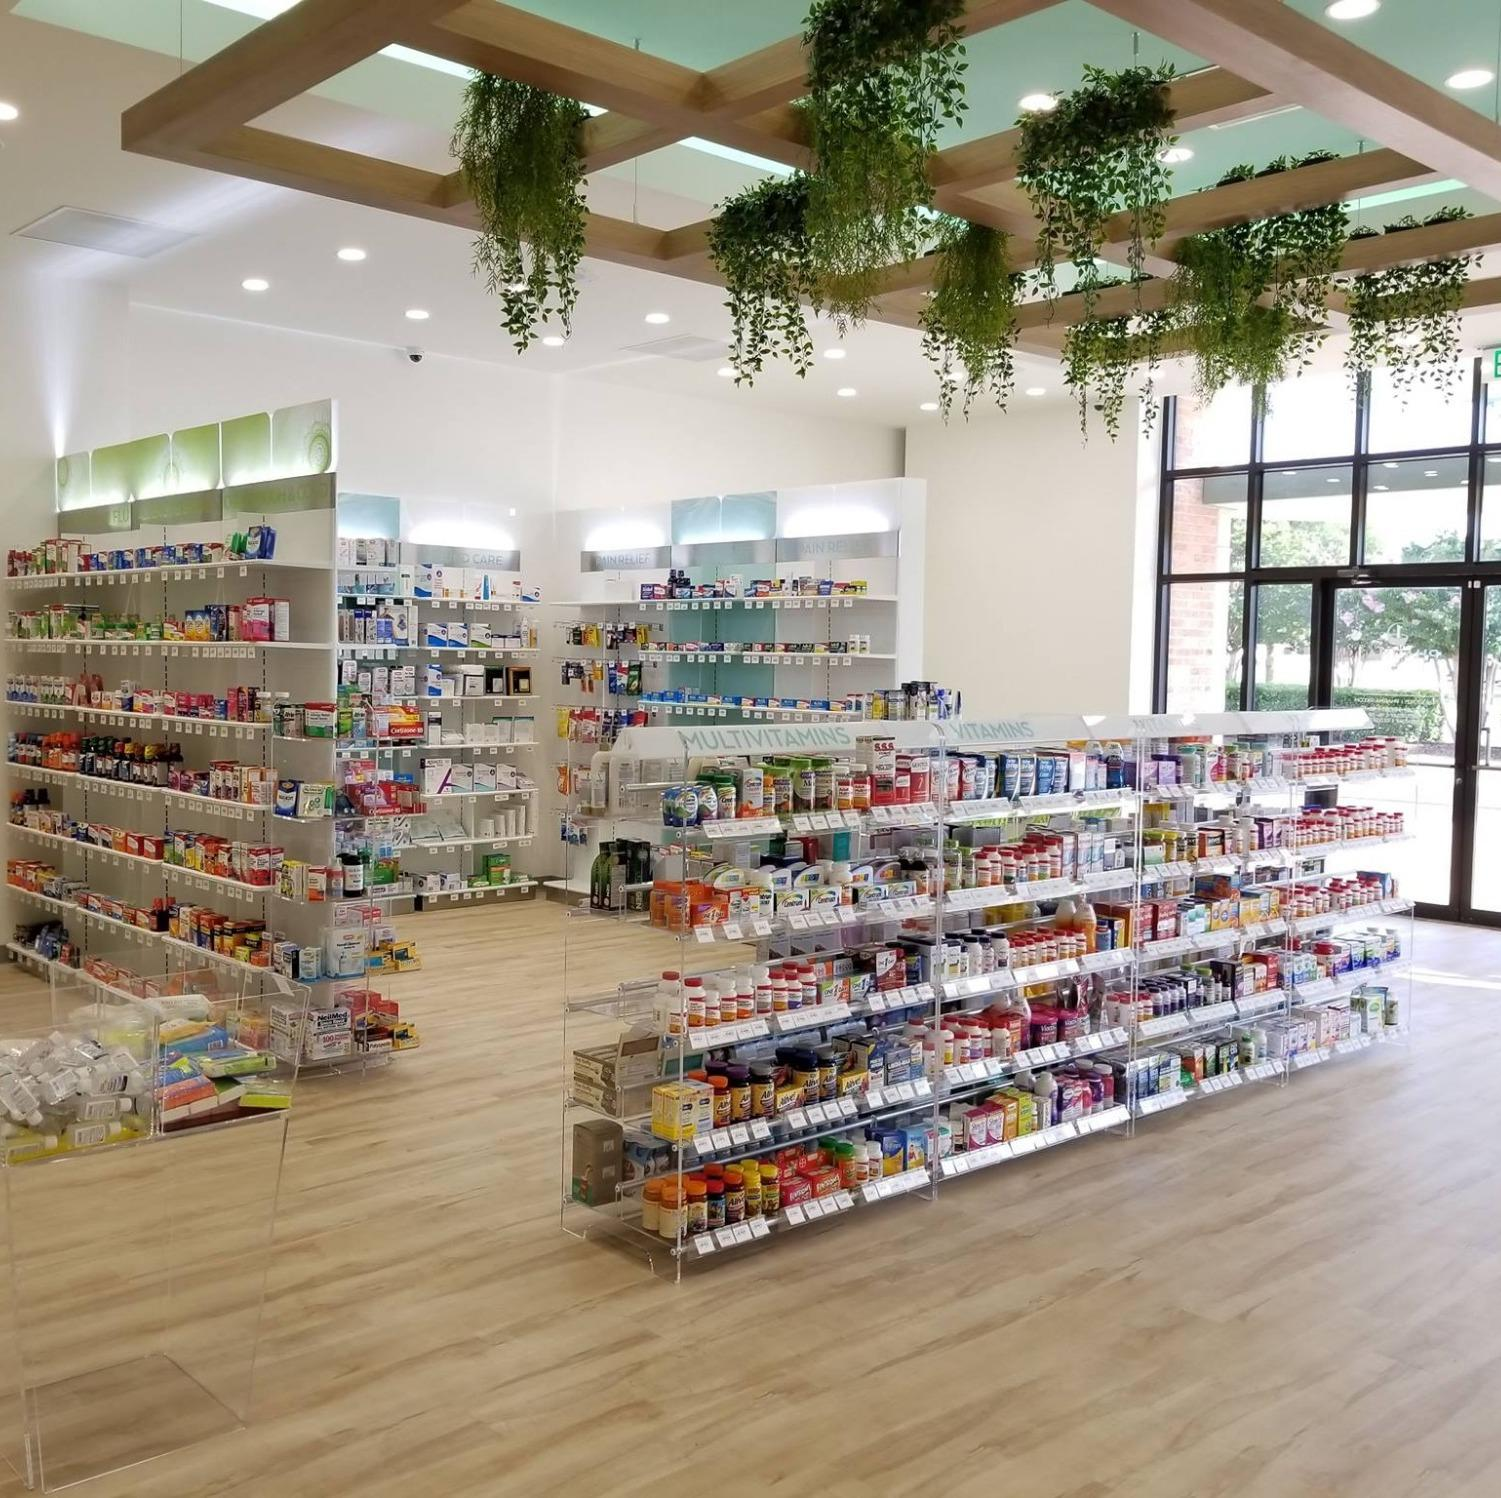 Pharma 1 Pharmacy & Wellness Center image 3